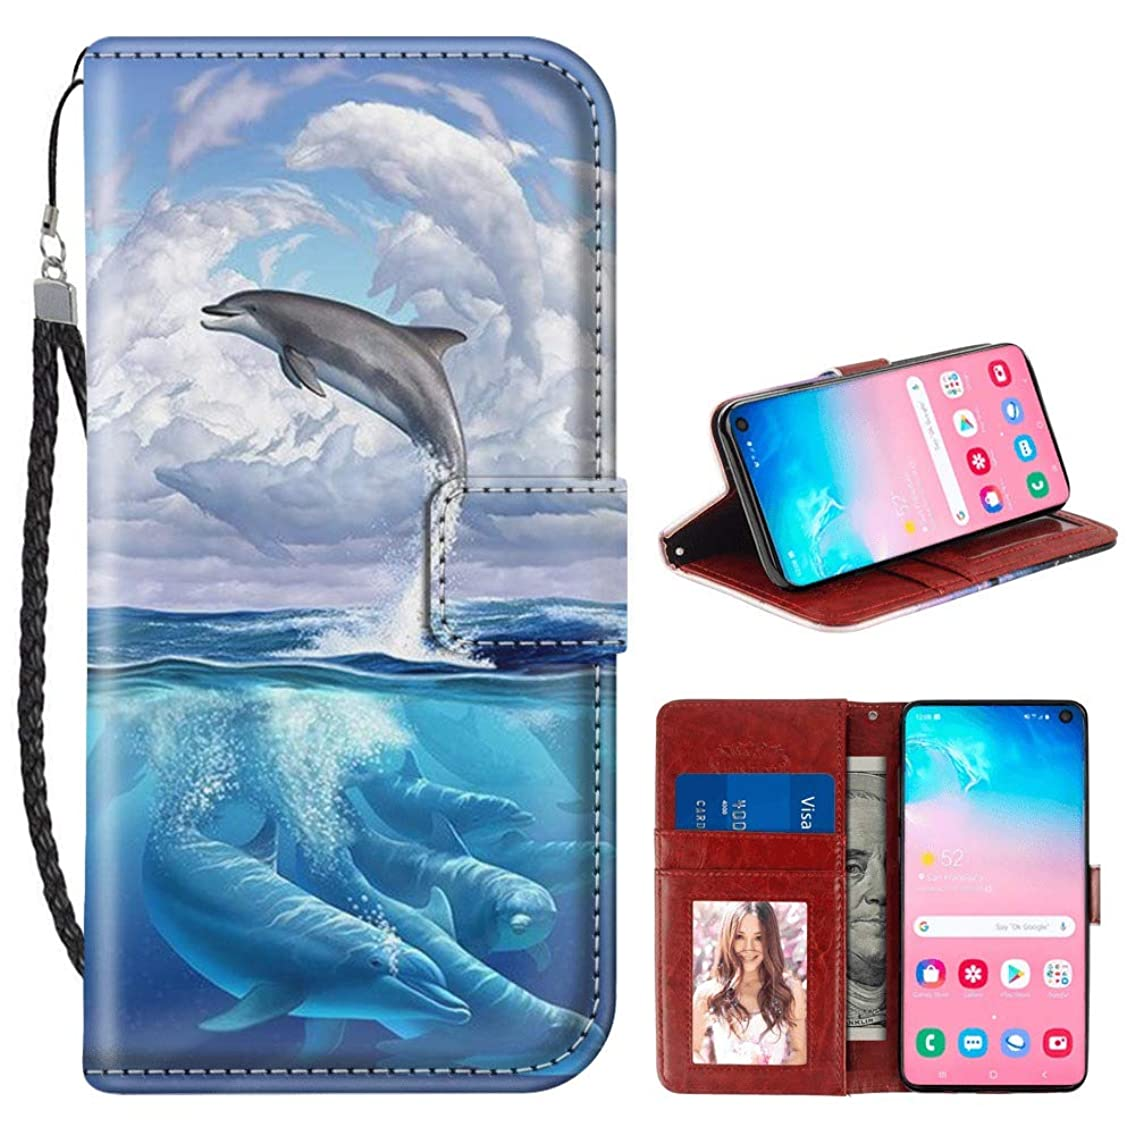 Dolphin Cloud Samsung Galaxy S10e Wallet Case for Kickstand PU Leather Card Slot Magnetic Flip Wristlet Phone Cover Samsung Galaxy S10e Case Dolphin Cloud